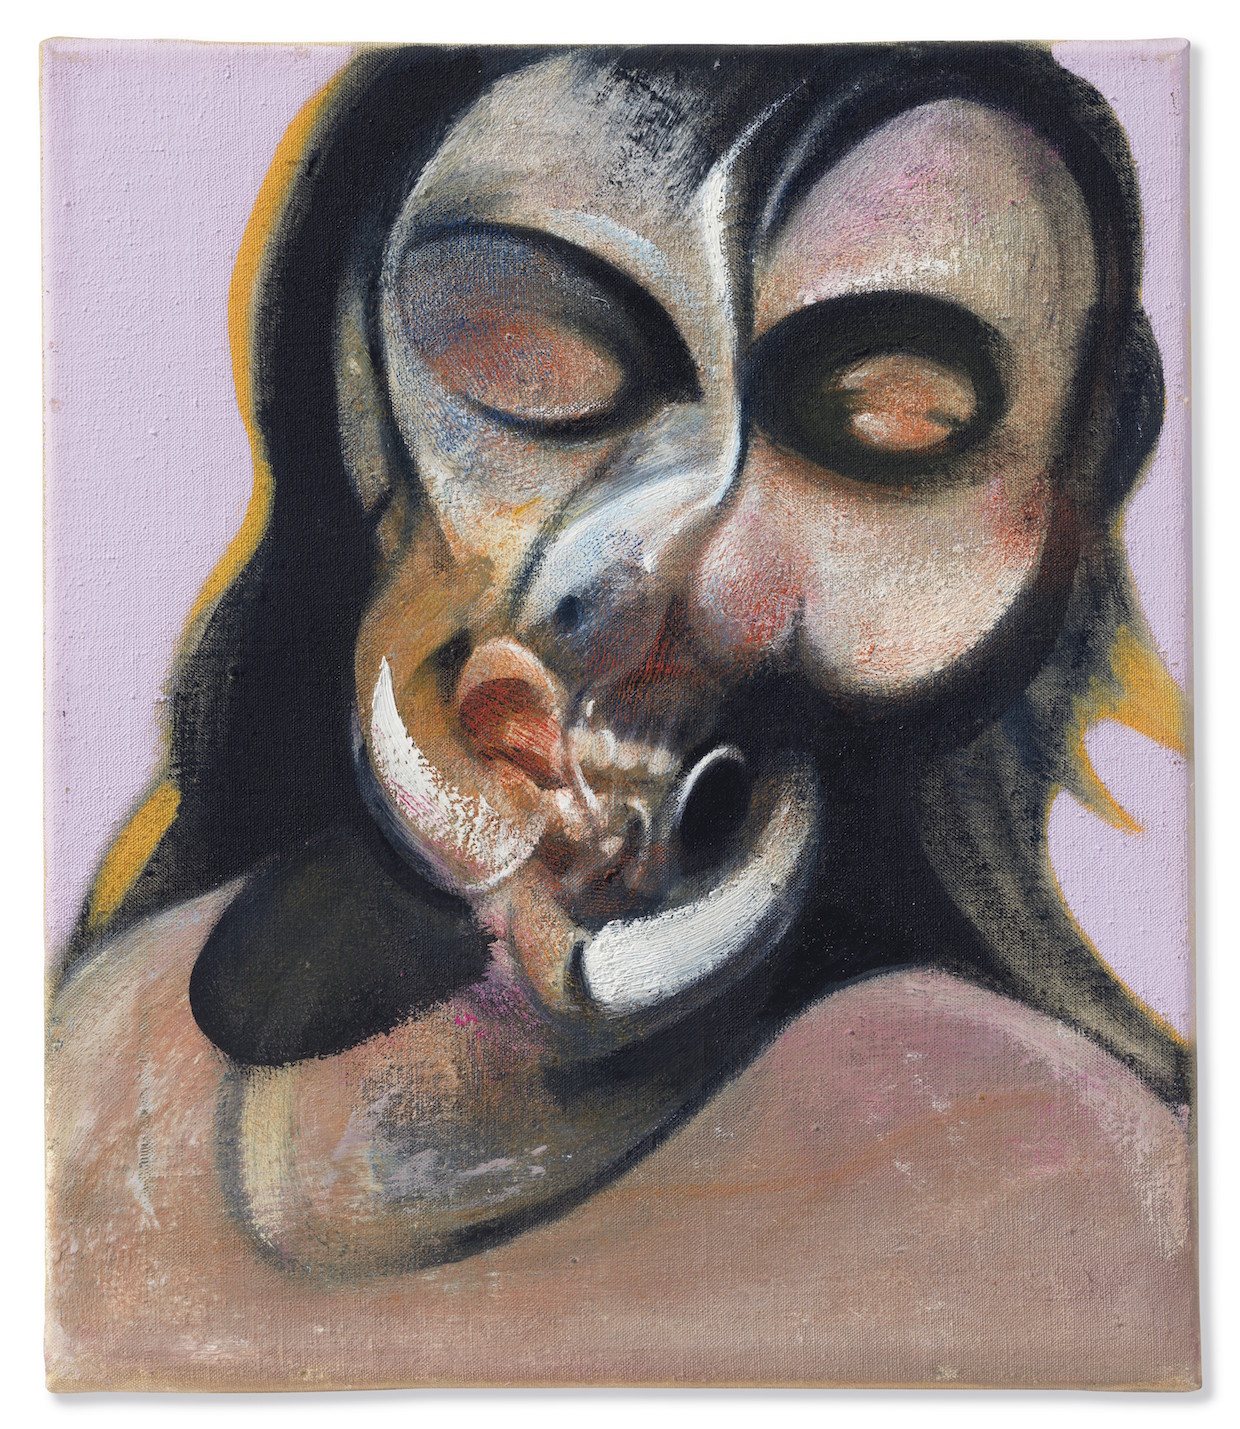 francis bacon from s i newhouse collection will be sold at